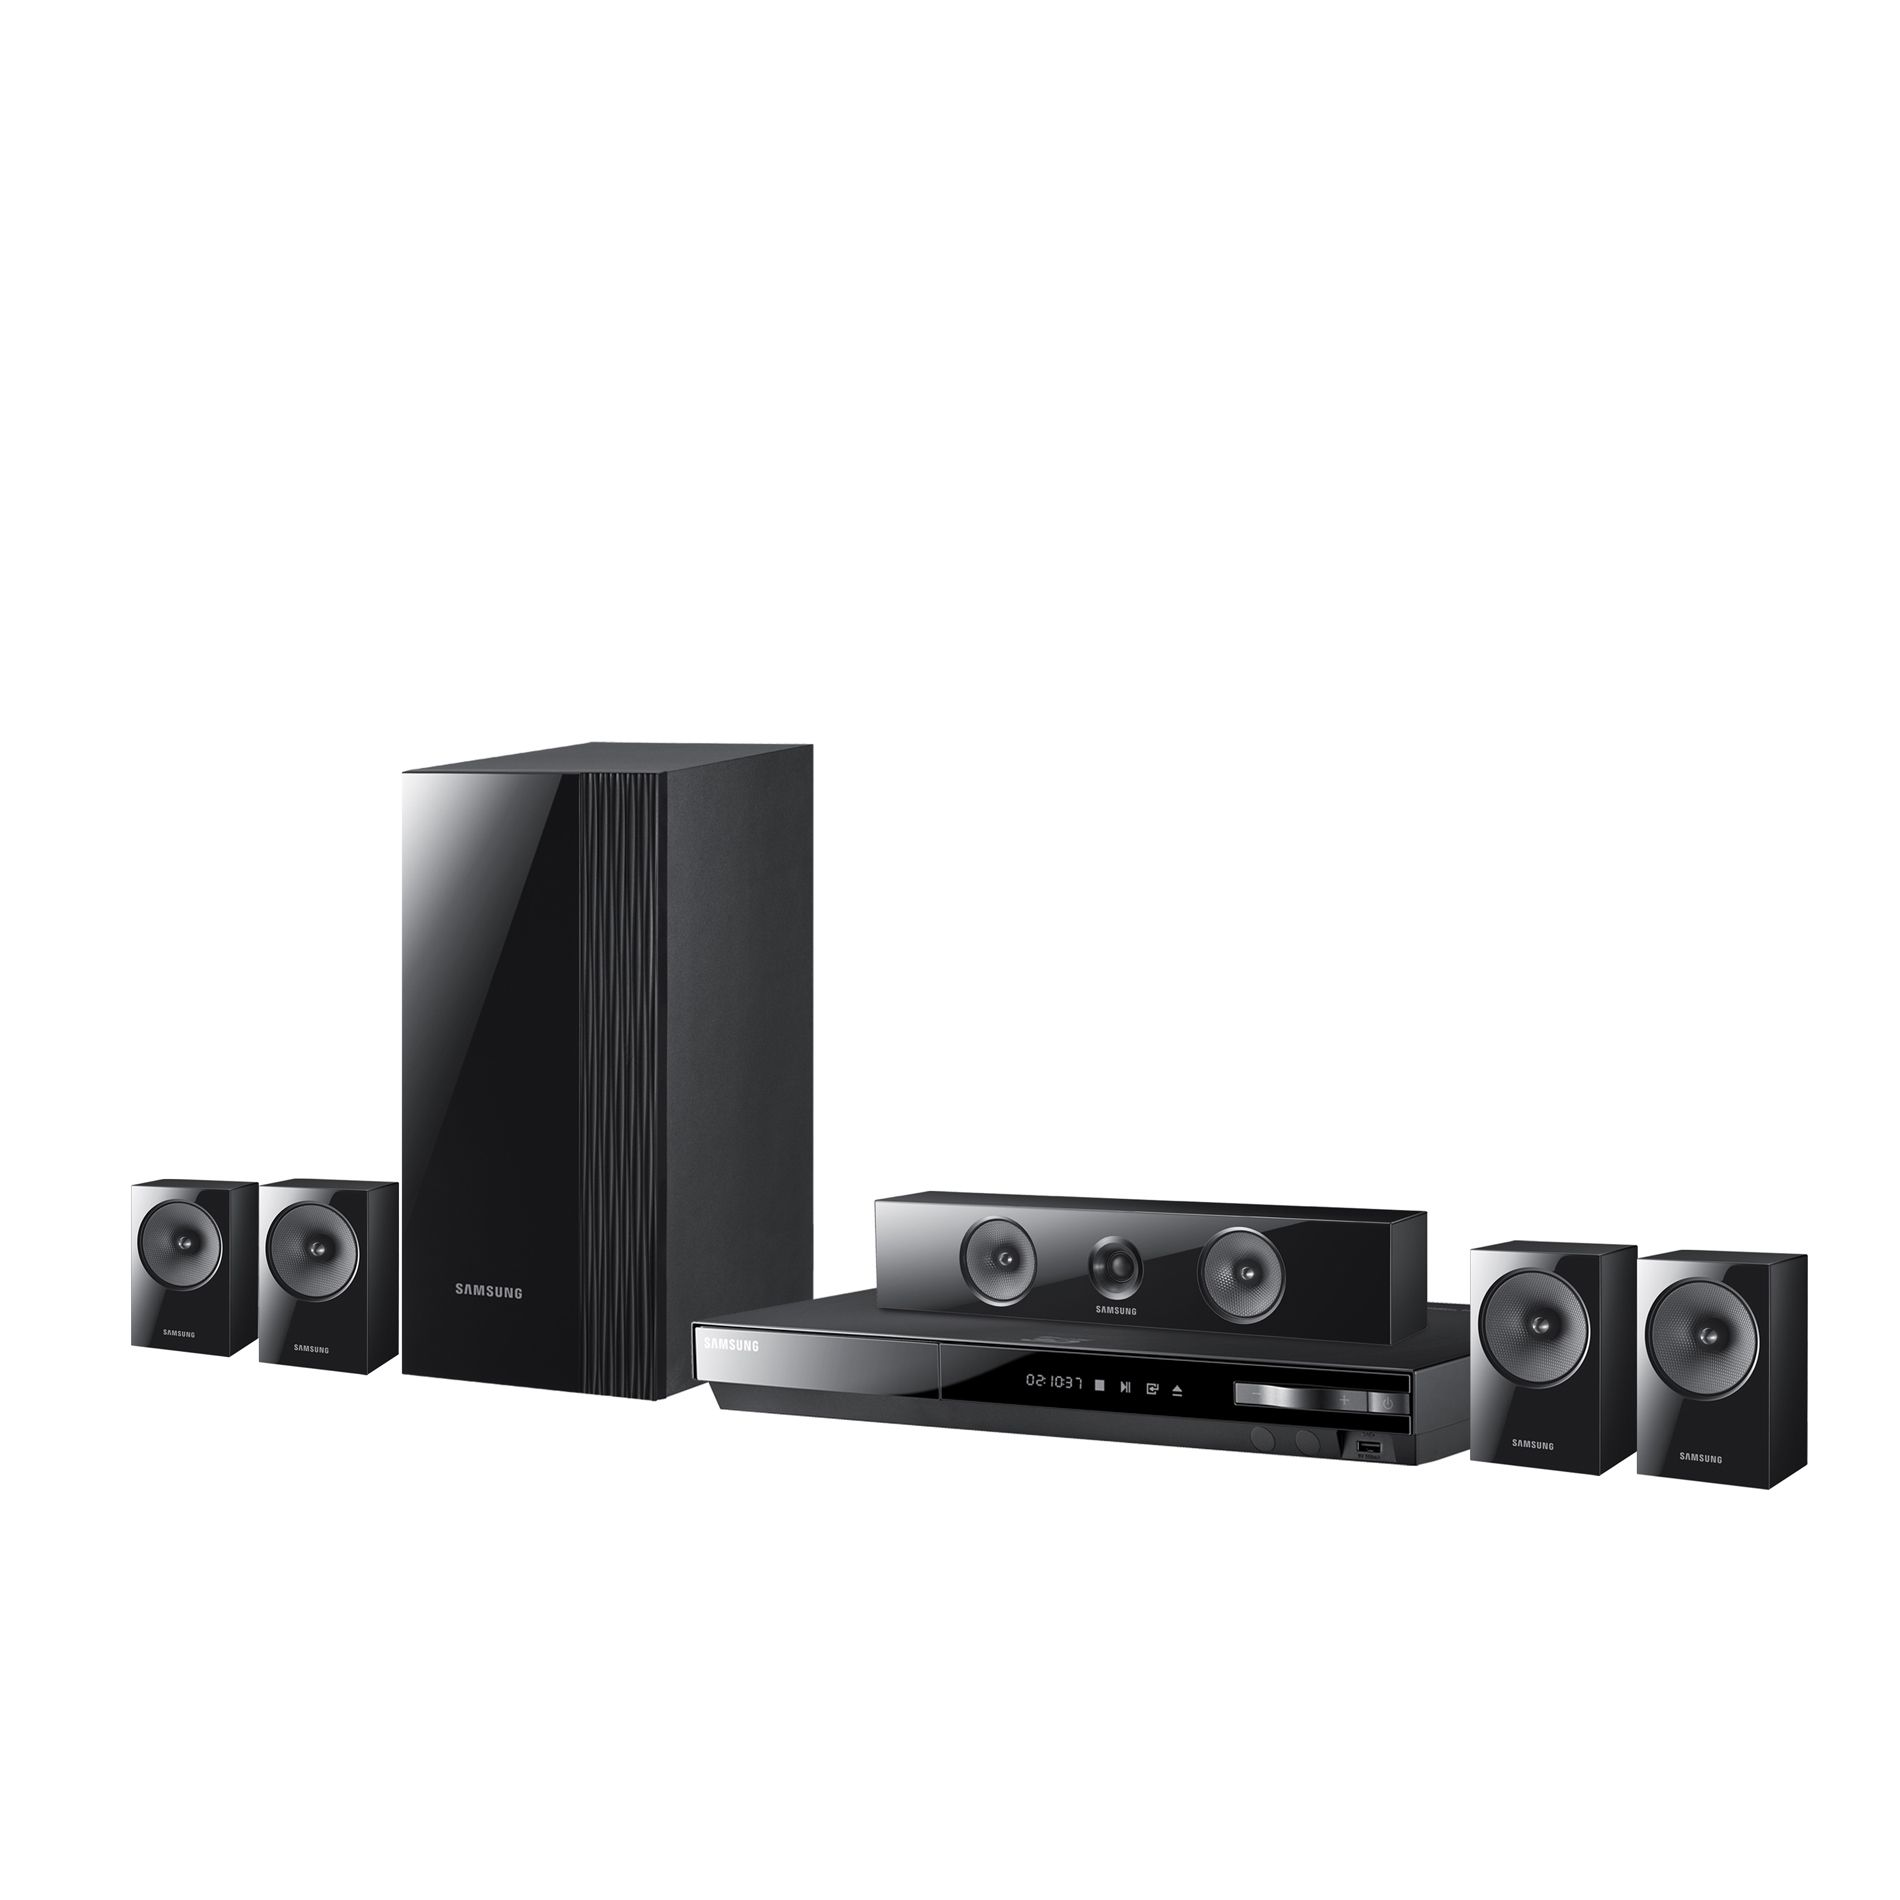 Buy Samsung Home Audio - Samsung Home Theater System HT-E5400